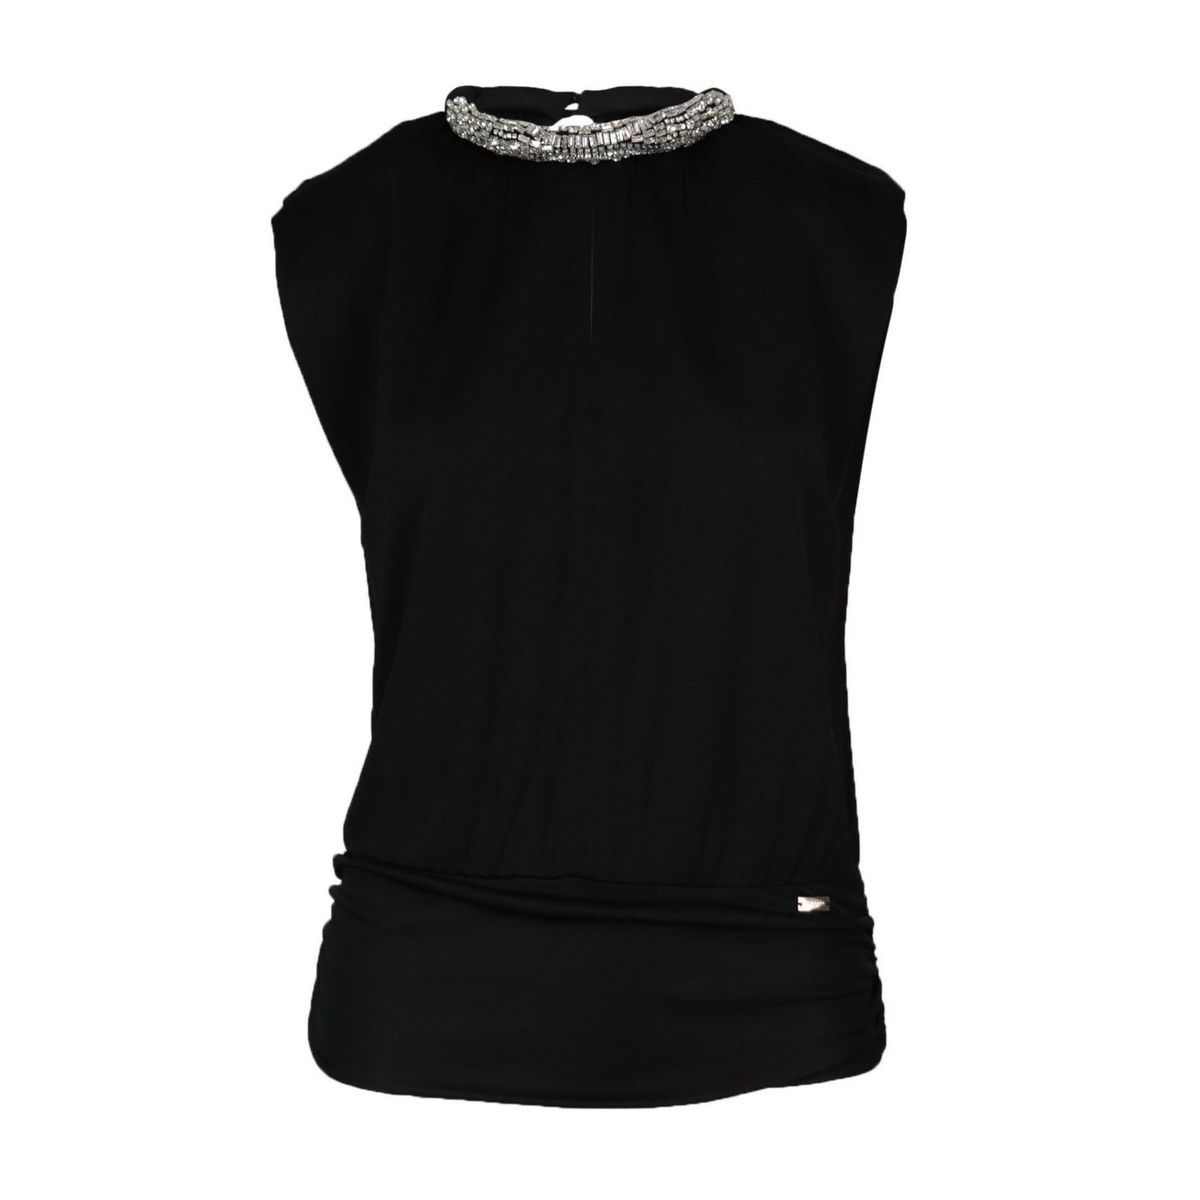 Filippa blouse in fluid jersey with rhinestone application on the neckline Black Nenette